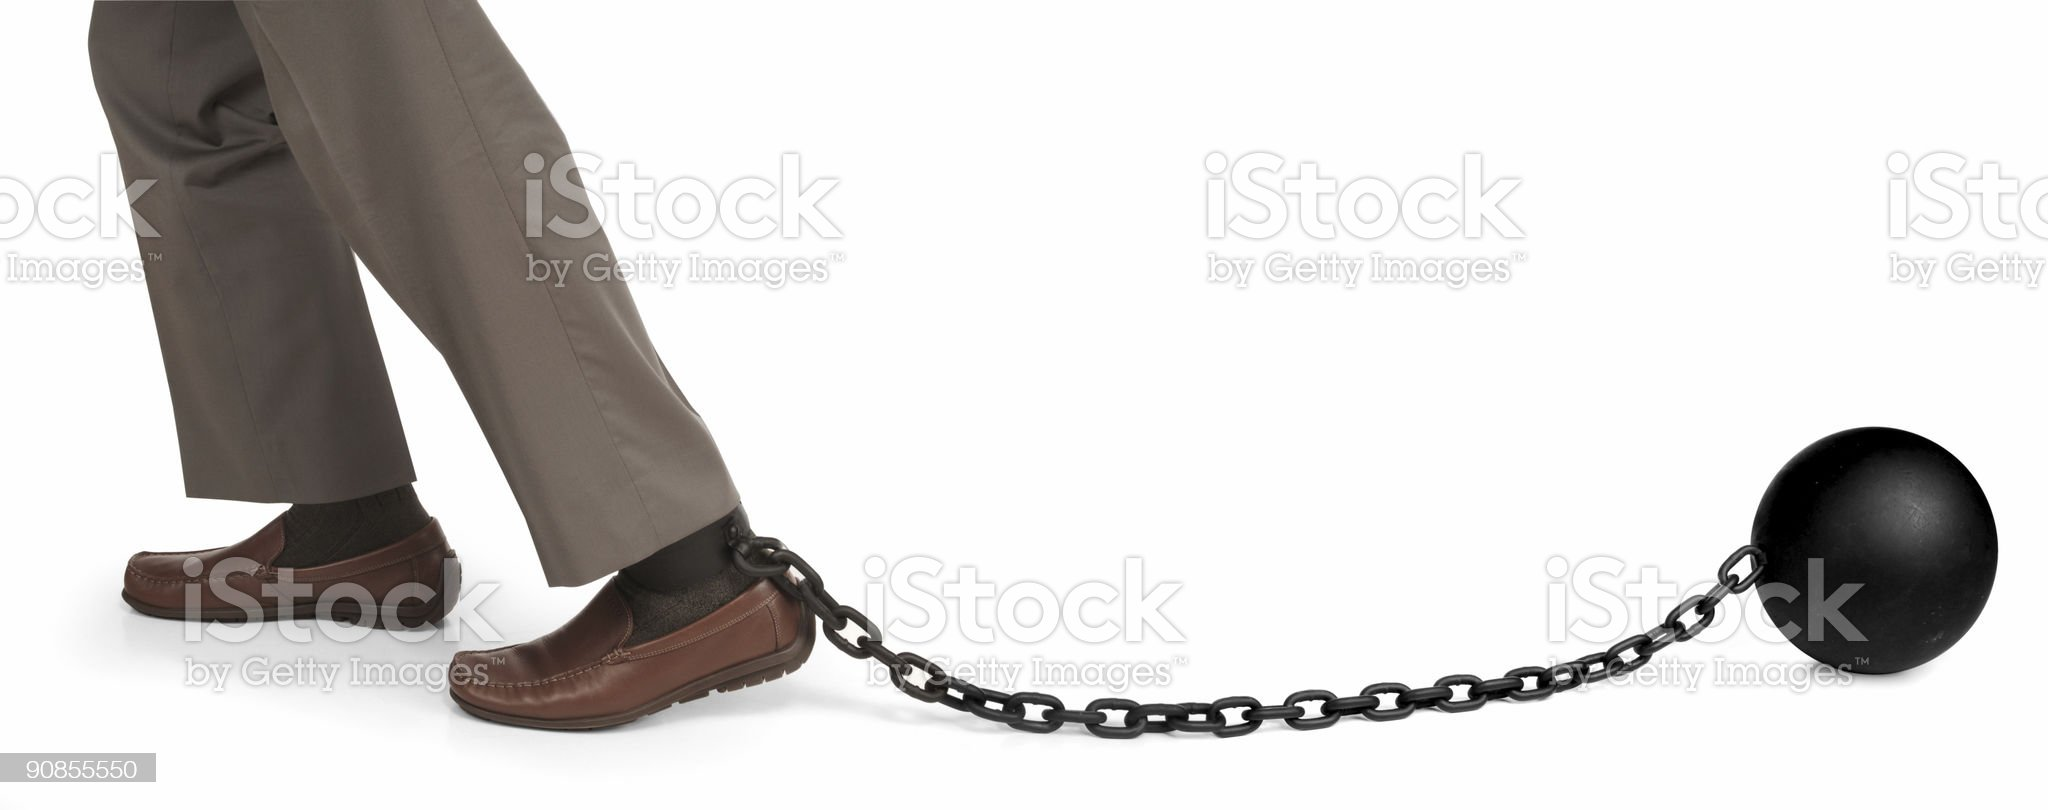 Feet in brown shoes hauling a ball and chain royalty-free stock photo